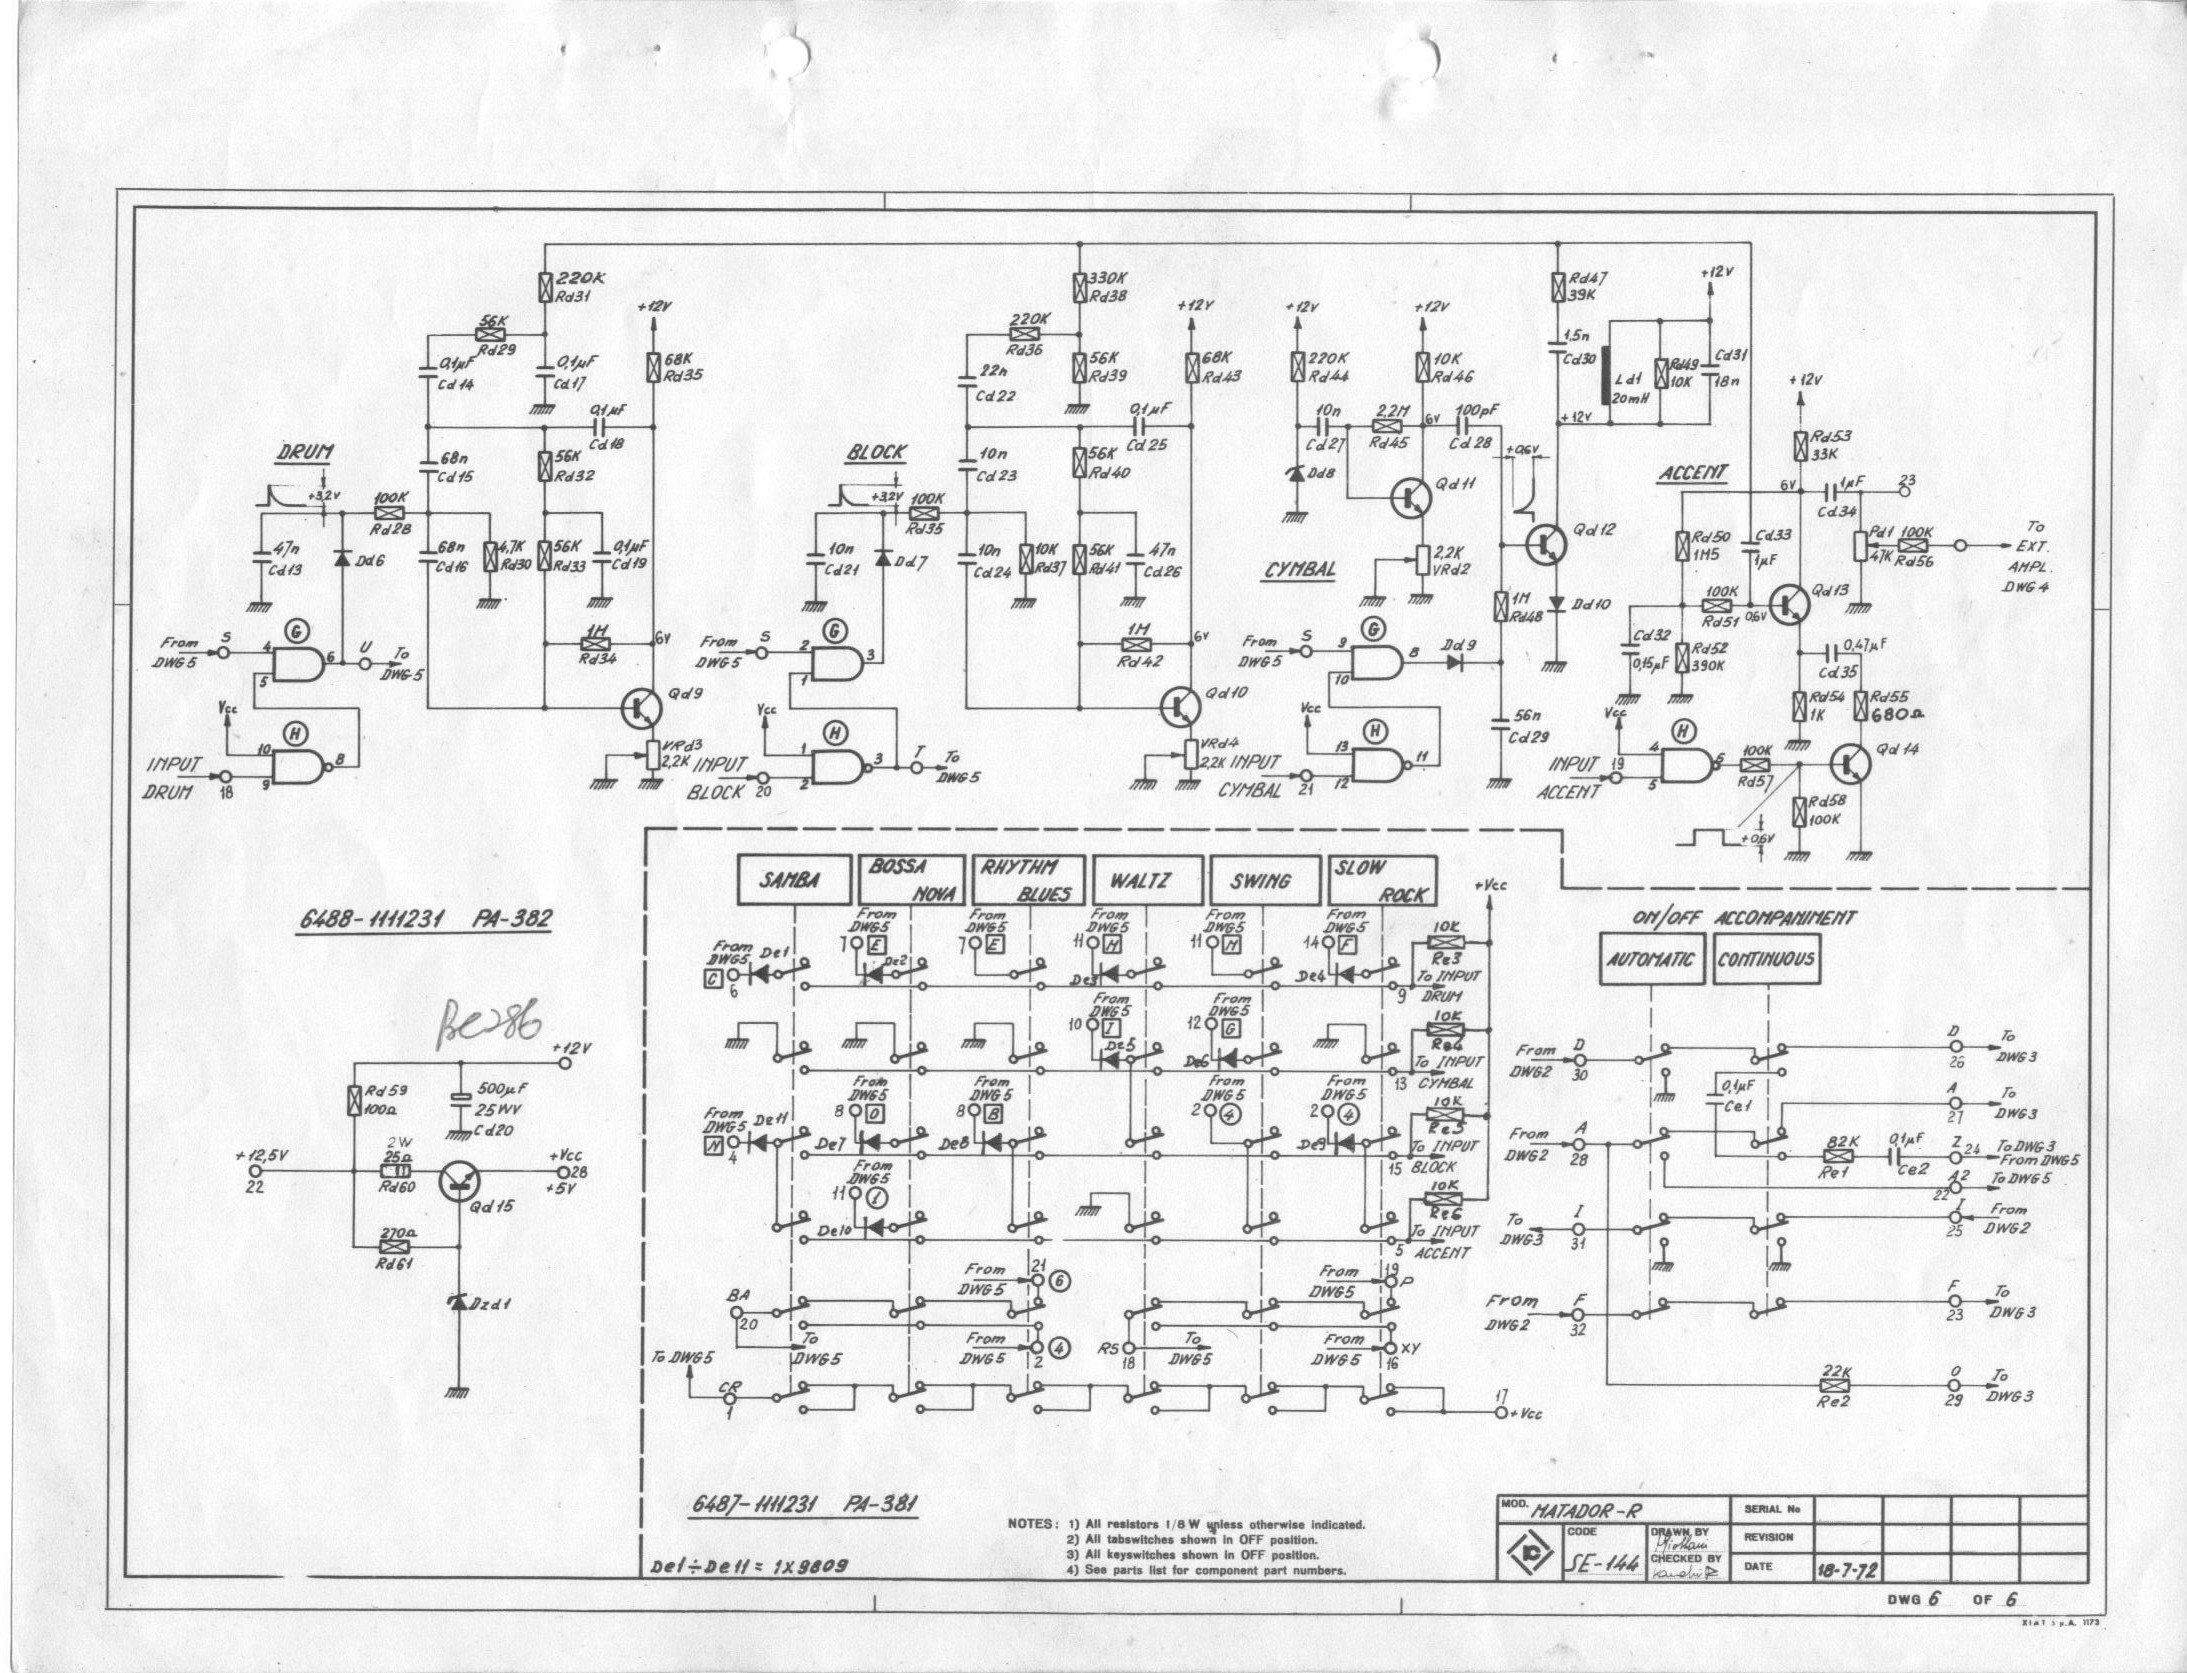 Matador07 farfisa matador r electronic organ schematic diagrams farfisa org farfisa wiring diagram at panicattacktreatment.co